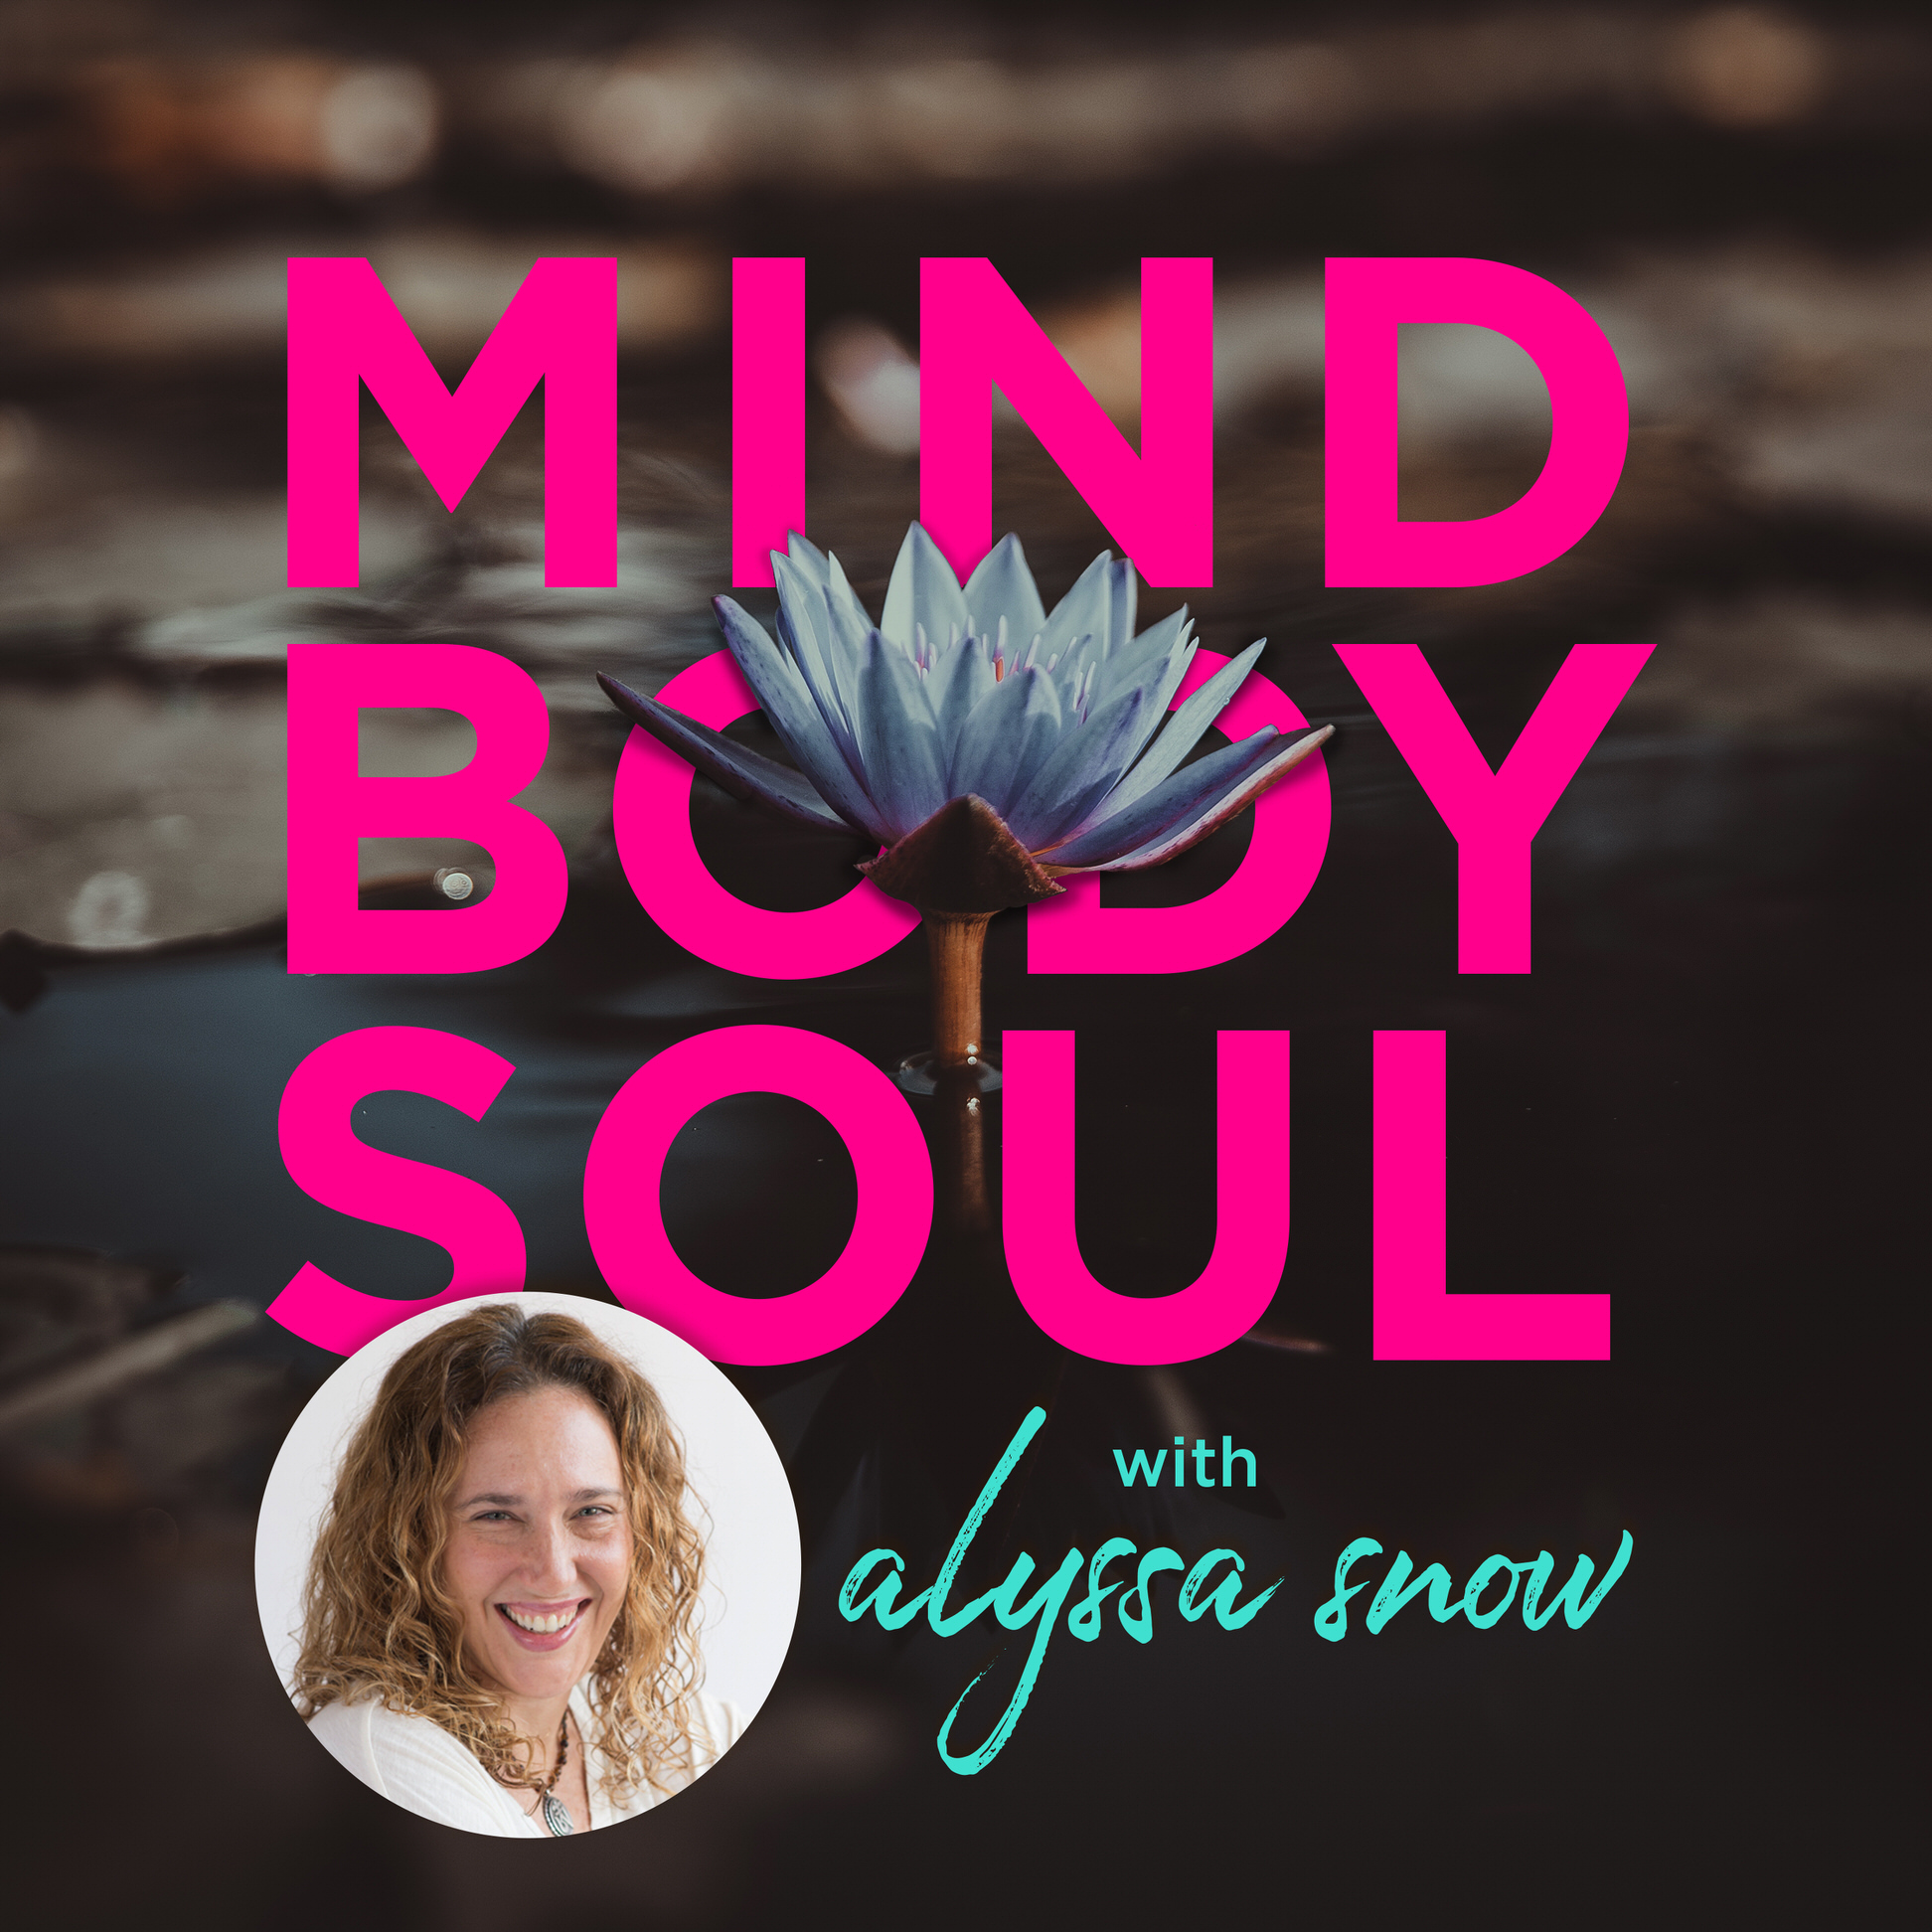 Welcome to Mind Body Soul Radio with Alyssa Snow - Thousands of years ago, monks and yogis would seek out enlightenment in caves and in the forests.In our times, we don't have the opportunity to seek enlightenment in caves. We are tasked to awaken in our daily lives.We are monks without monasteries. We are modern yogis and most of our yoga is done off the mat. That is, if we are paying attention.In this podcast, Alyssa dives into the awakening that comes about in our daily experiences after our yoga and meditation practice. Awakening and healing are pretty words, but it's not all butterflies and unicorns.We're getting real and we're getting gritty. Because ya know, the lotus grows in mud. So let's talk about that mud.Podcast intro composed and produced by Mathis Picard.